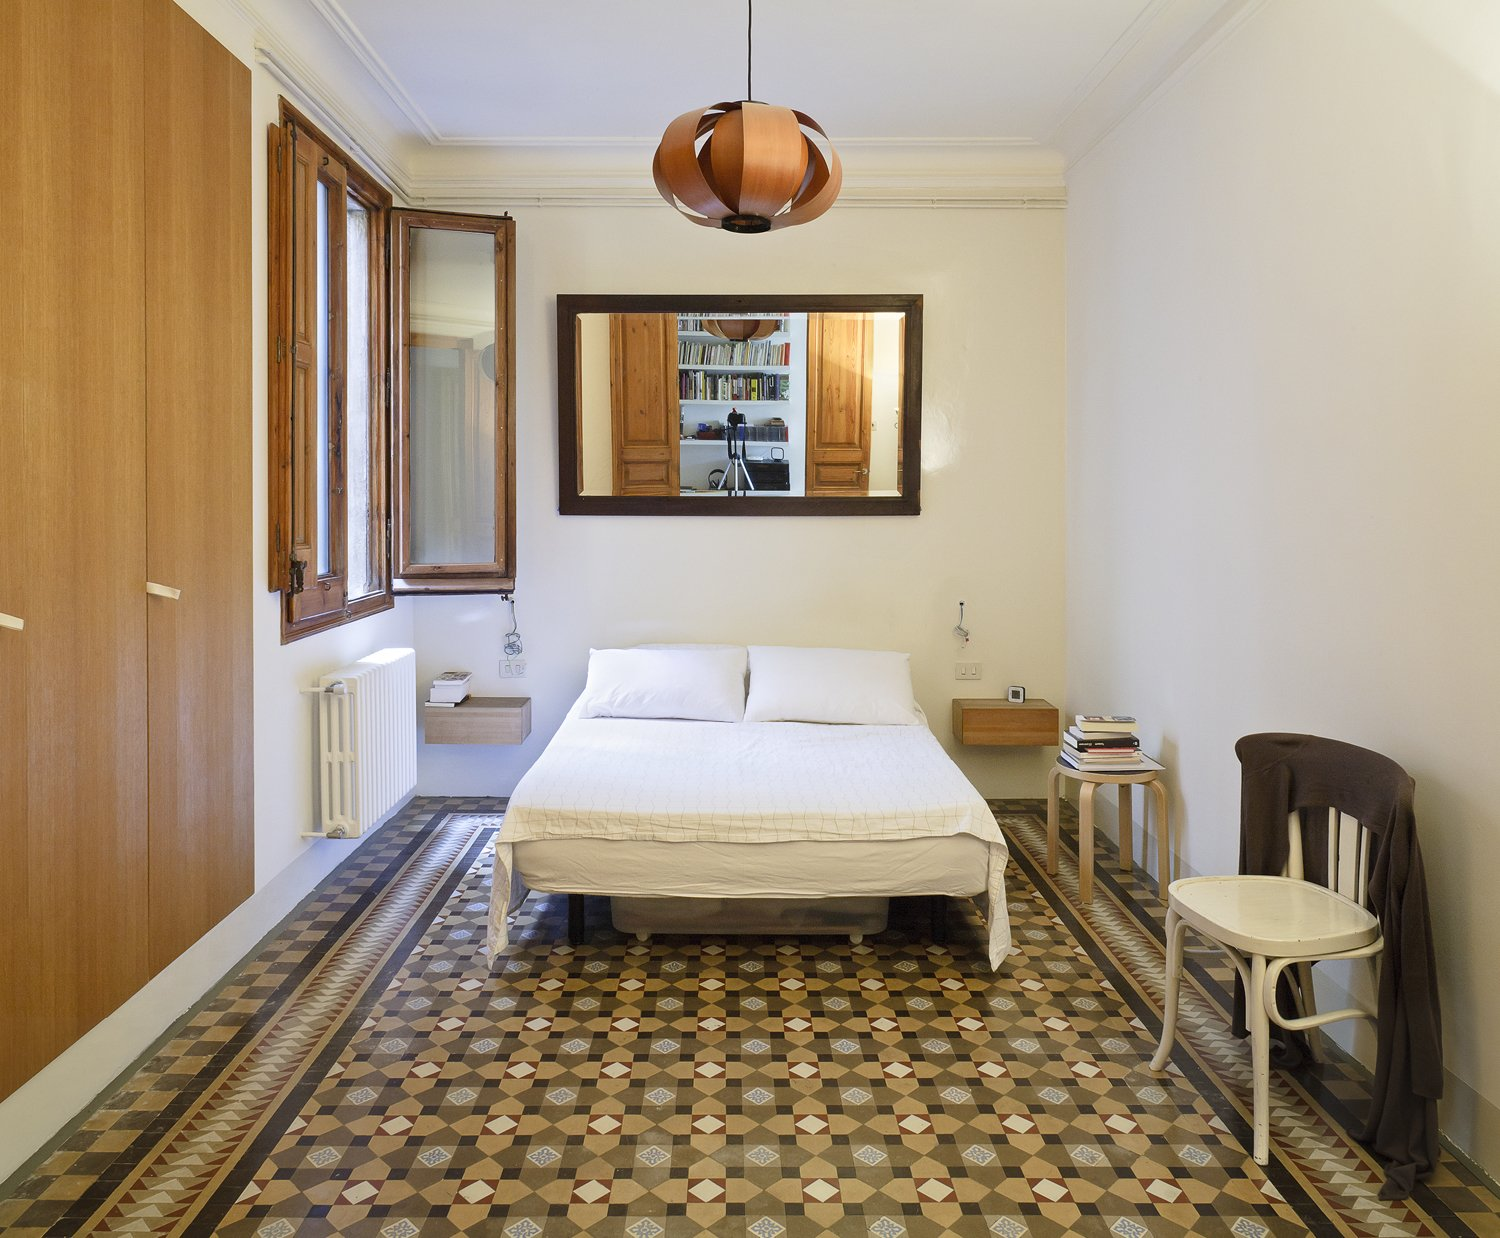 Understated décor in the master bedroom lets the floor tiles fully pop. A pendant lamp designed in 1957 by Spanish modernist architect José Antonio hangs above the bed.  Photo 7 of 8 in Historic Details and Playful Modernism Meet in this Stunning Barcelona Flat